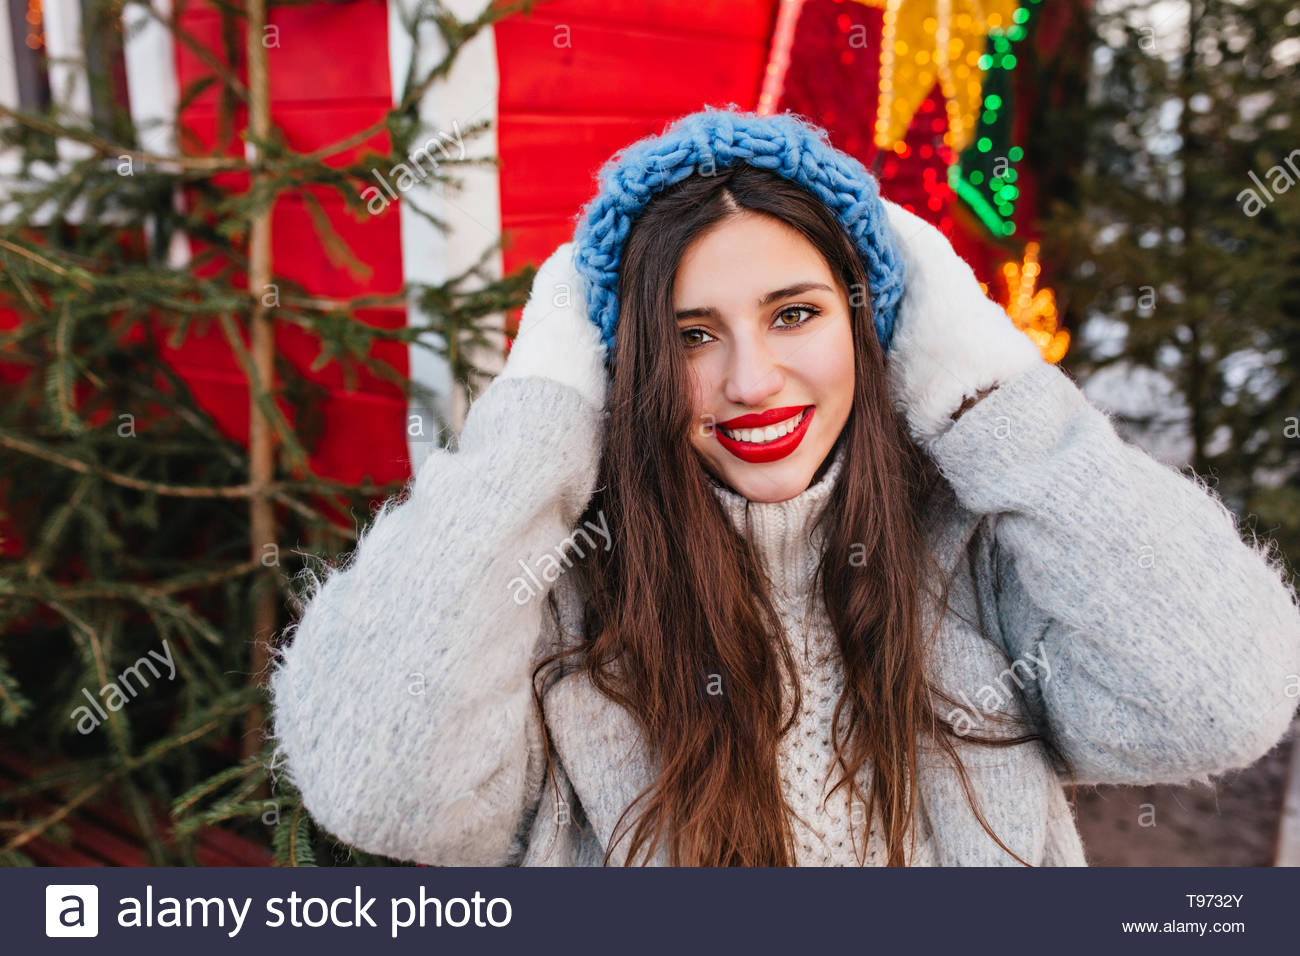 Close-up portrait of enthusiastic girl in blue hat posing with happy face expression in front of christmas trees. Outdoor photo of glamorous woman with  dark hair standing near new year decoration. - Stock Image